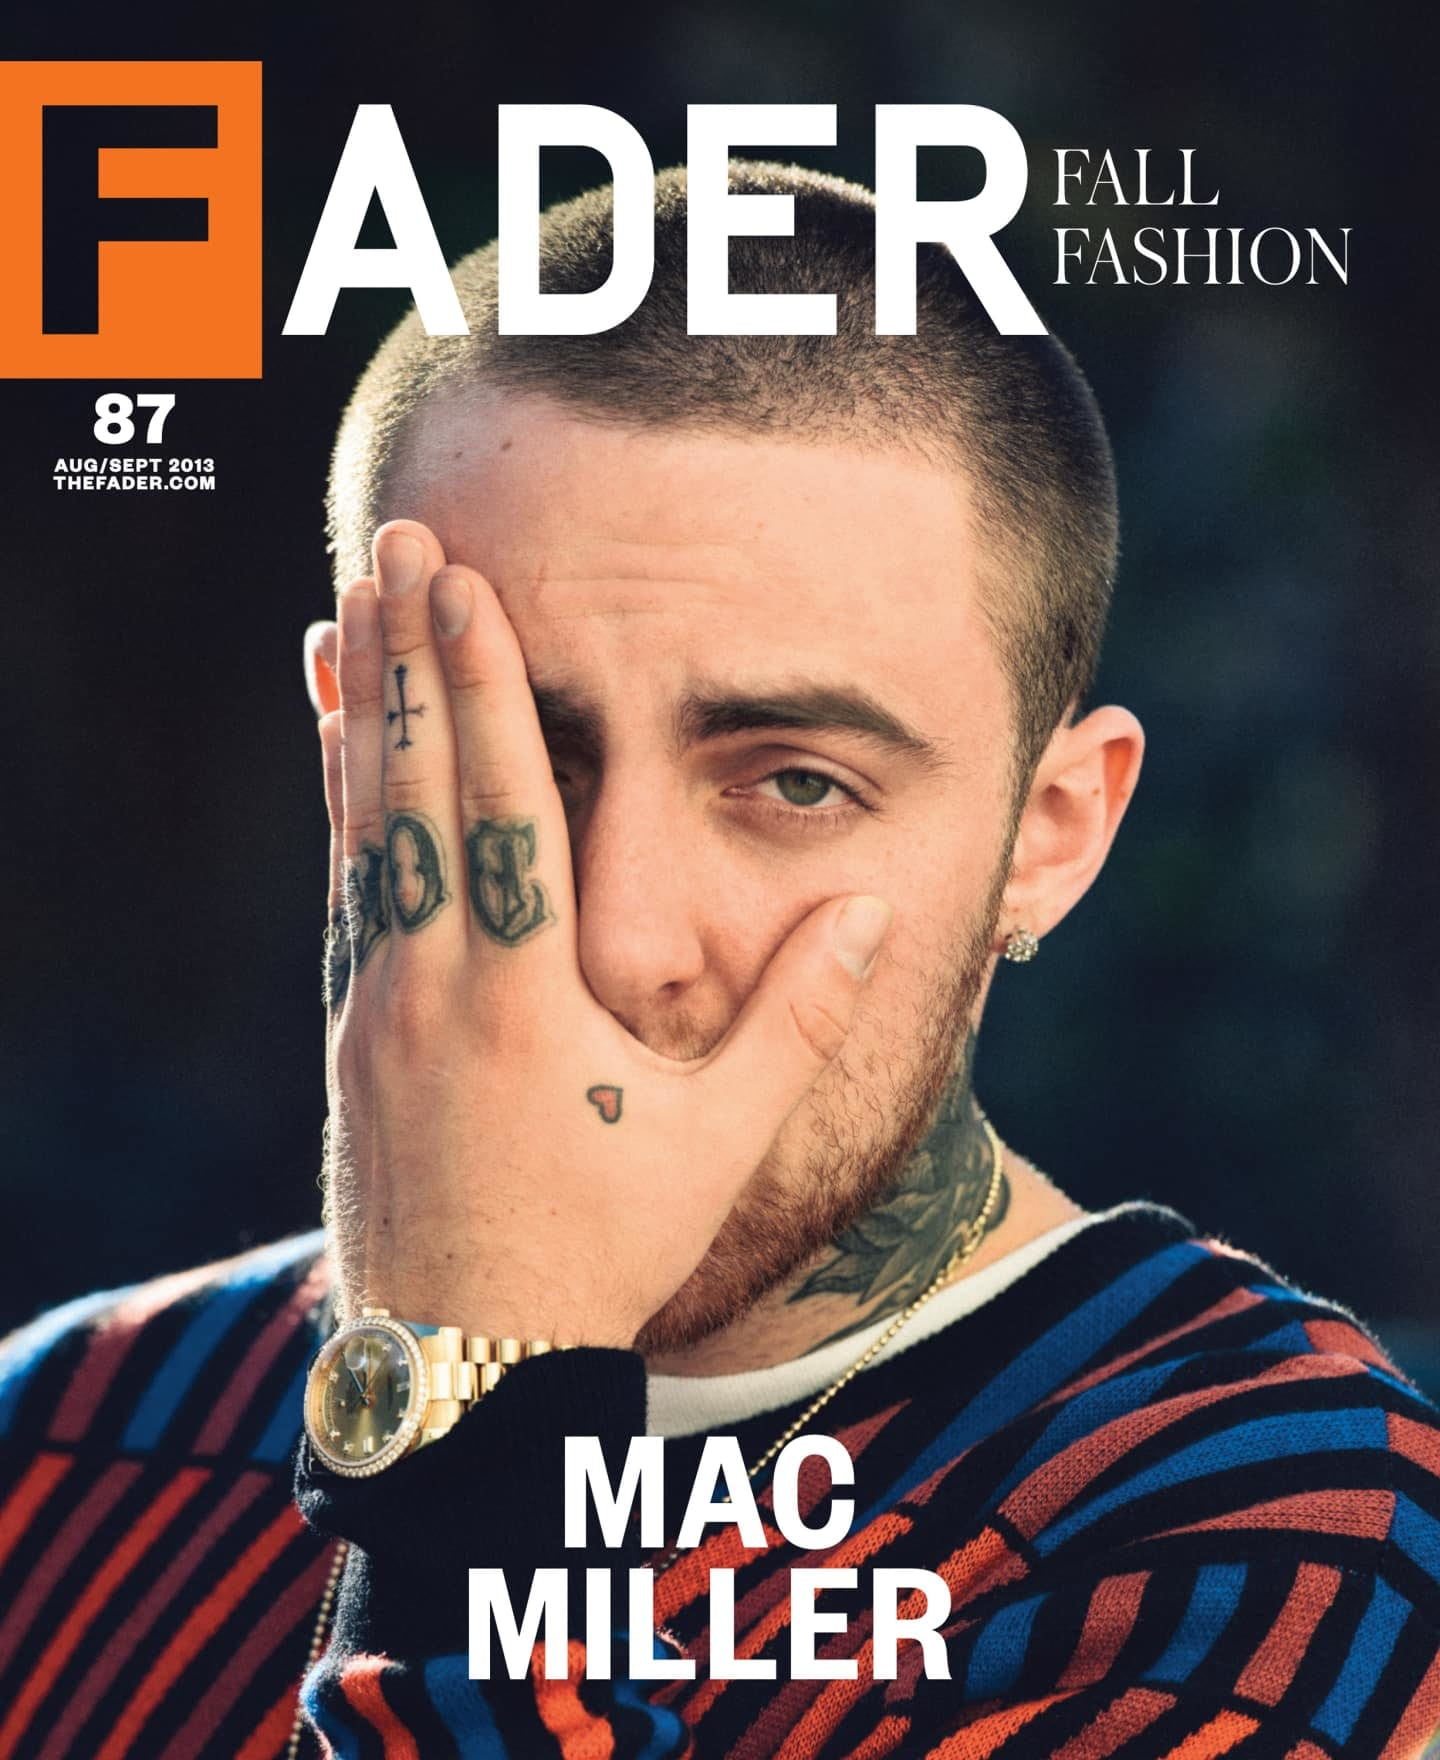 In memory of Mac Miller